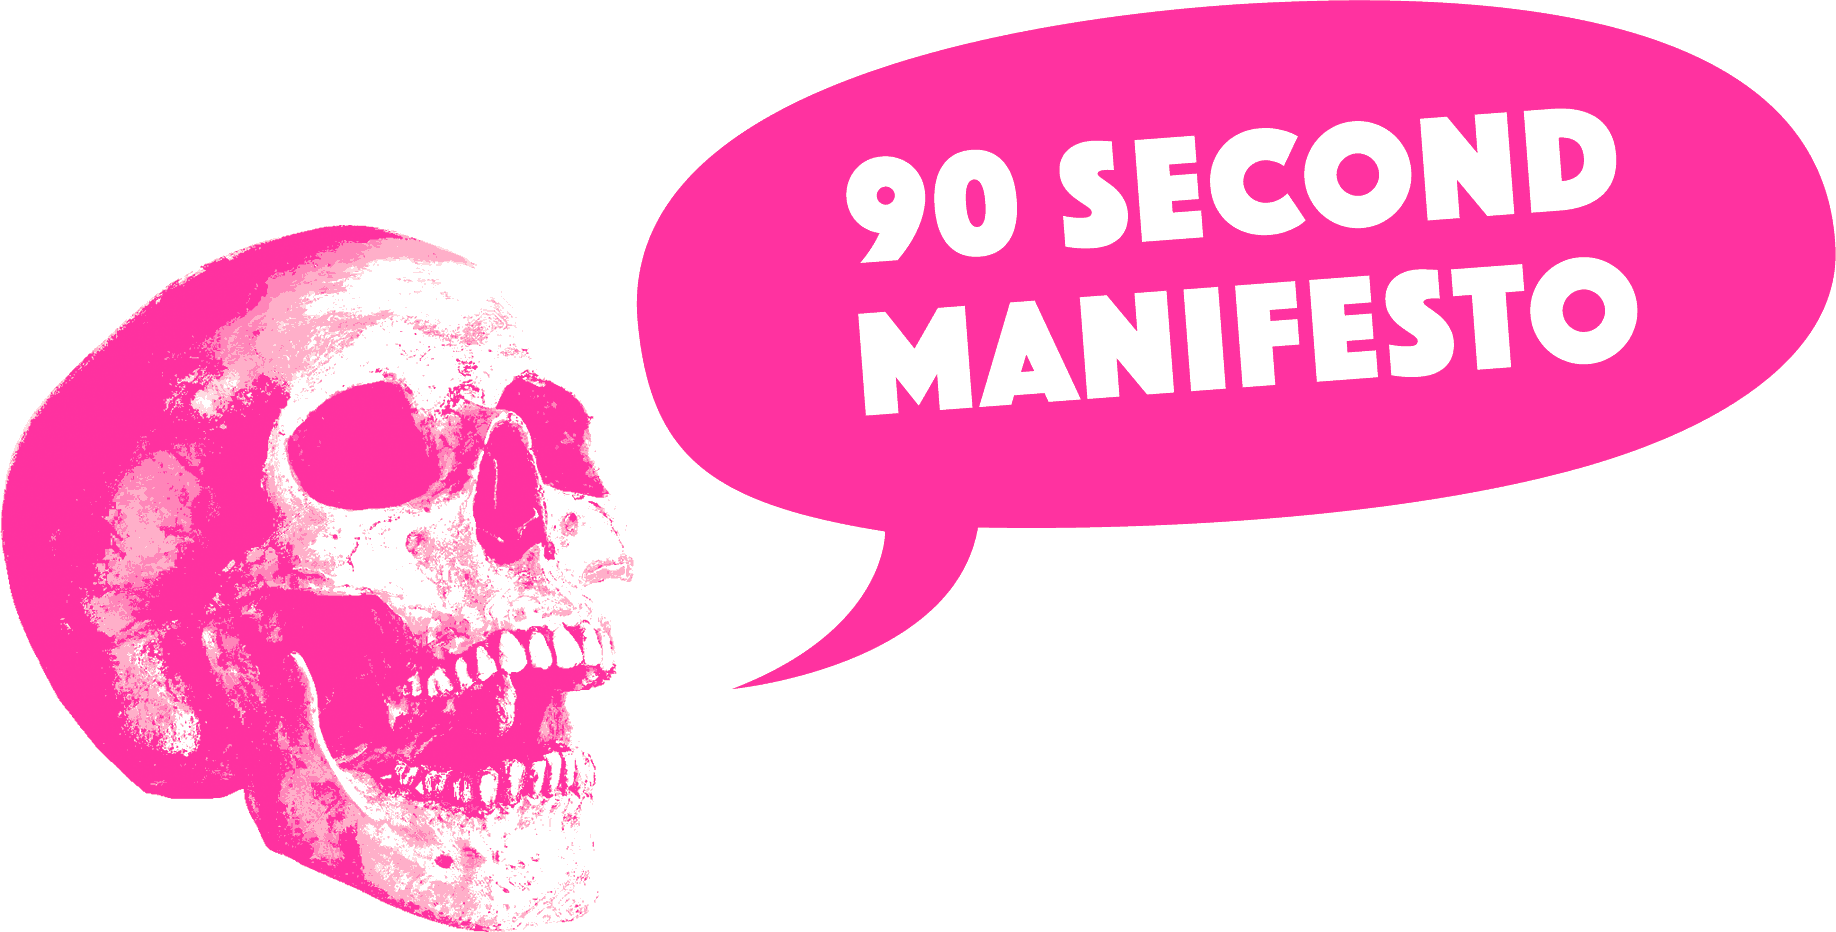 a yelling skull presents: 90 SECOND MANIFESTO